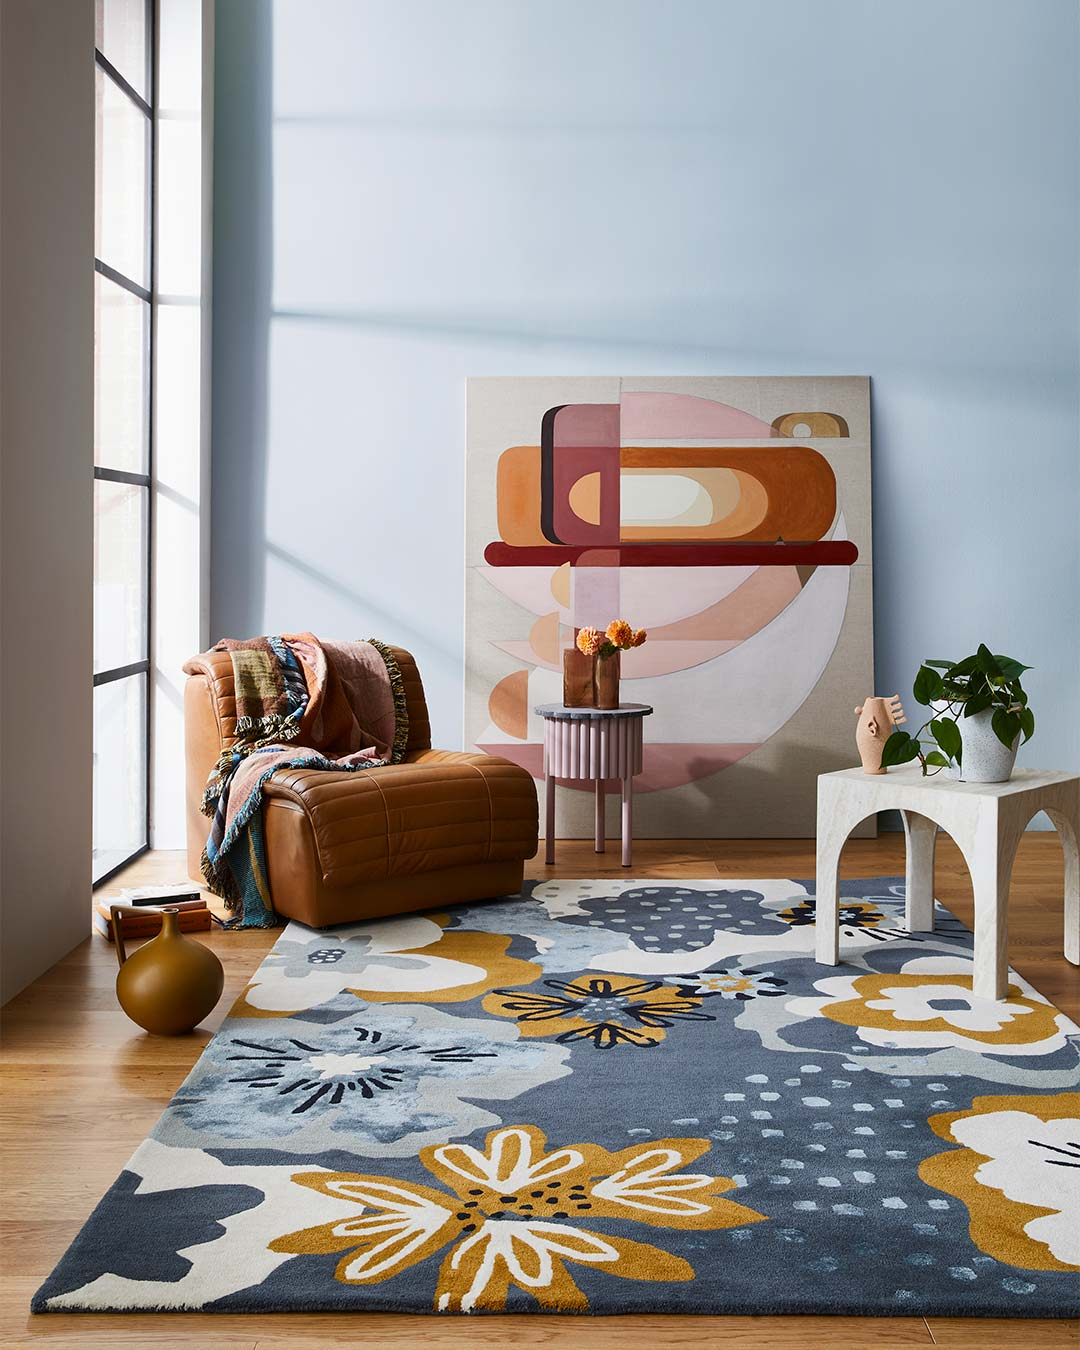 styled image of floral Twiggy rug